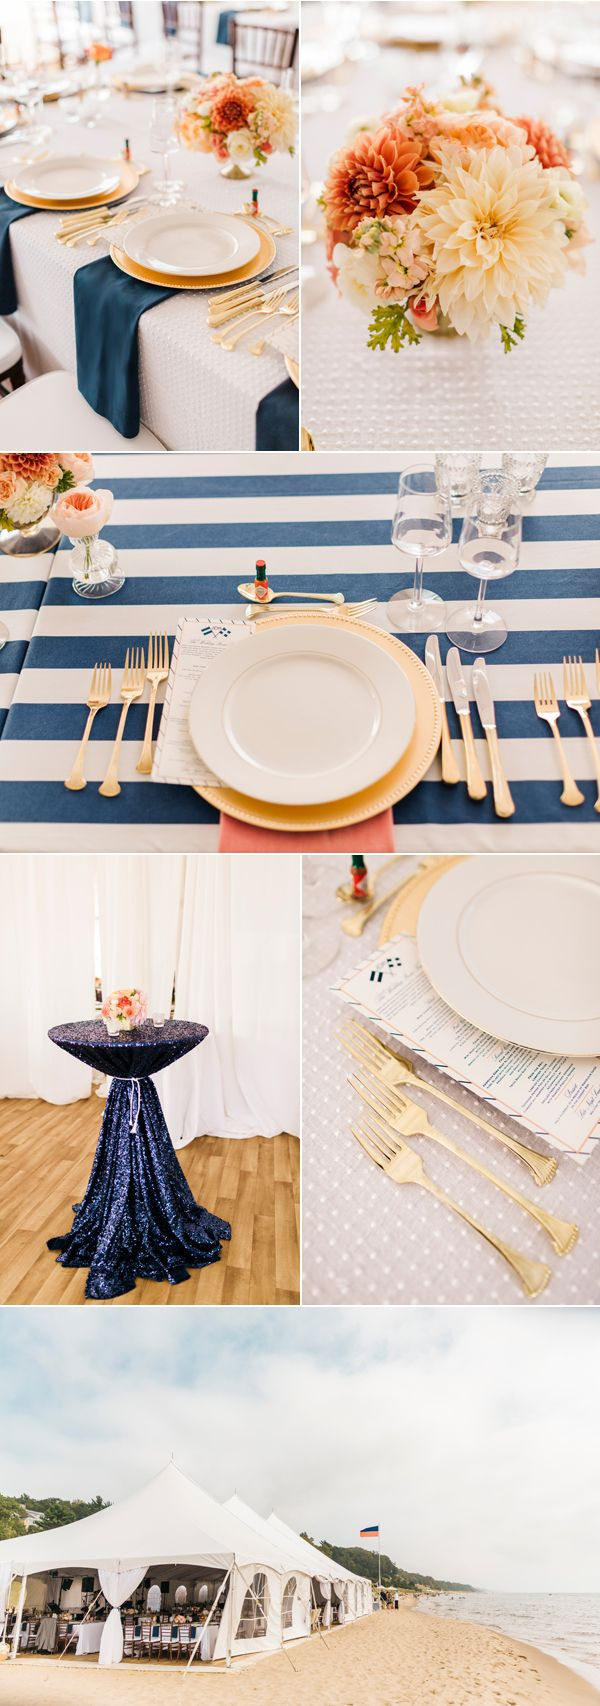 nautical table decorations for weddings best 25 nautical wedding flowers ideas on 6102